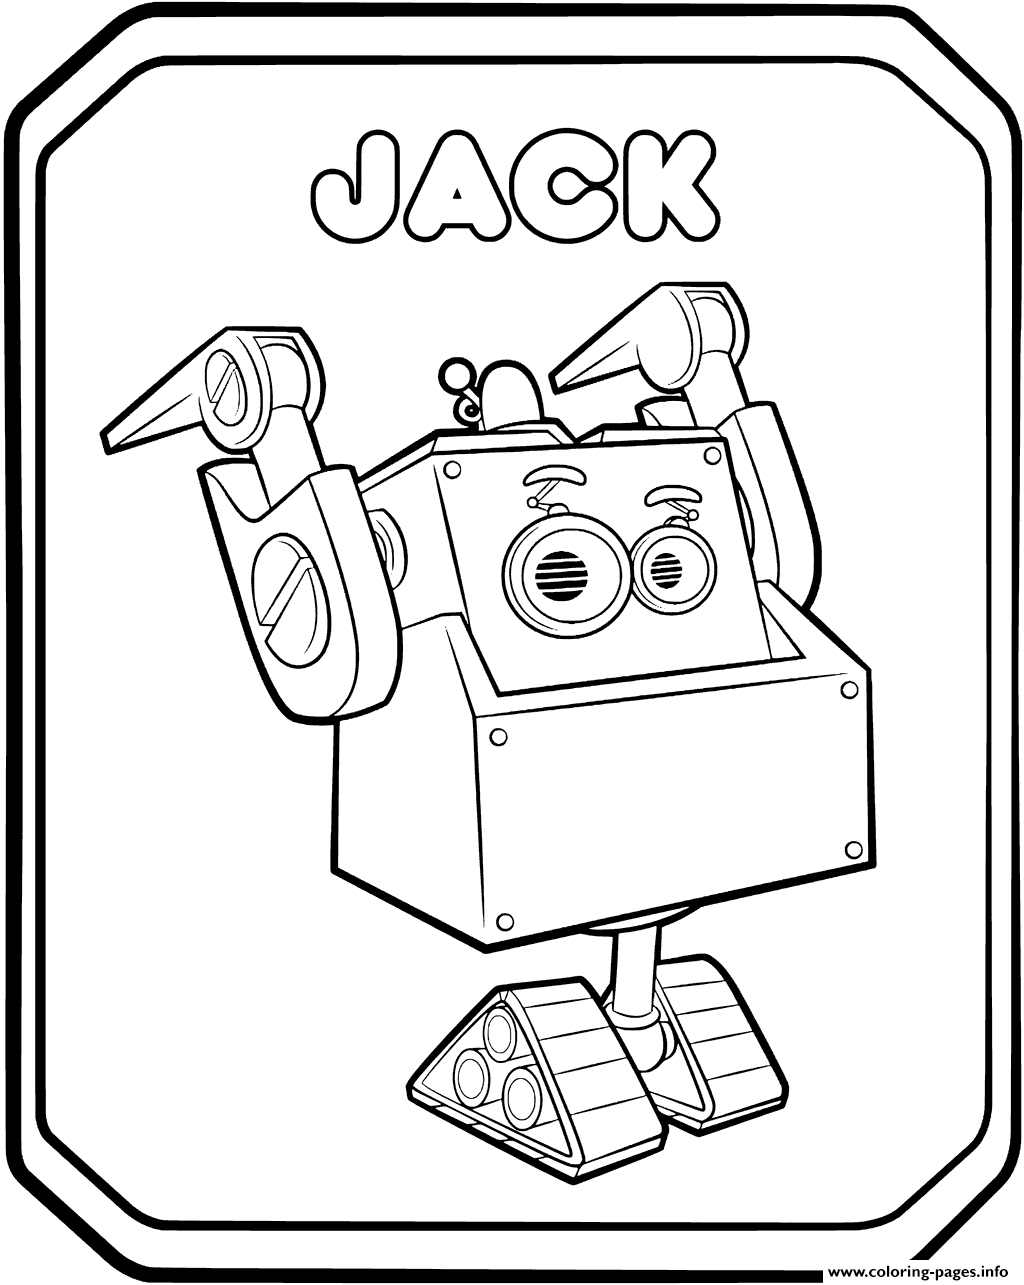 Rusty Rivets Robot Jack Coloring Pages Printable